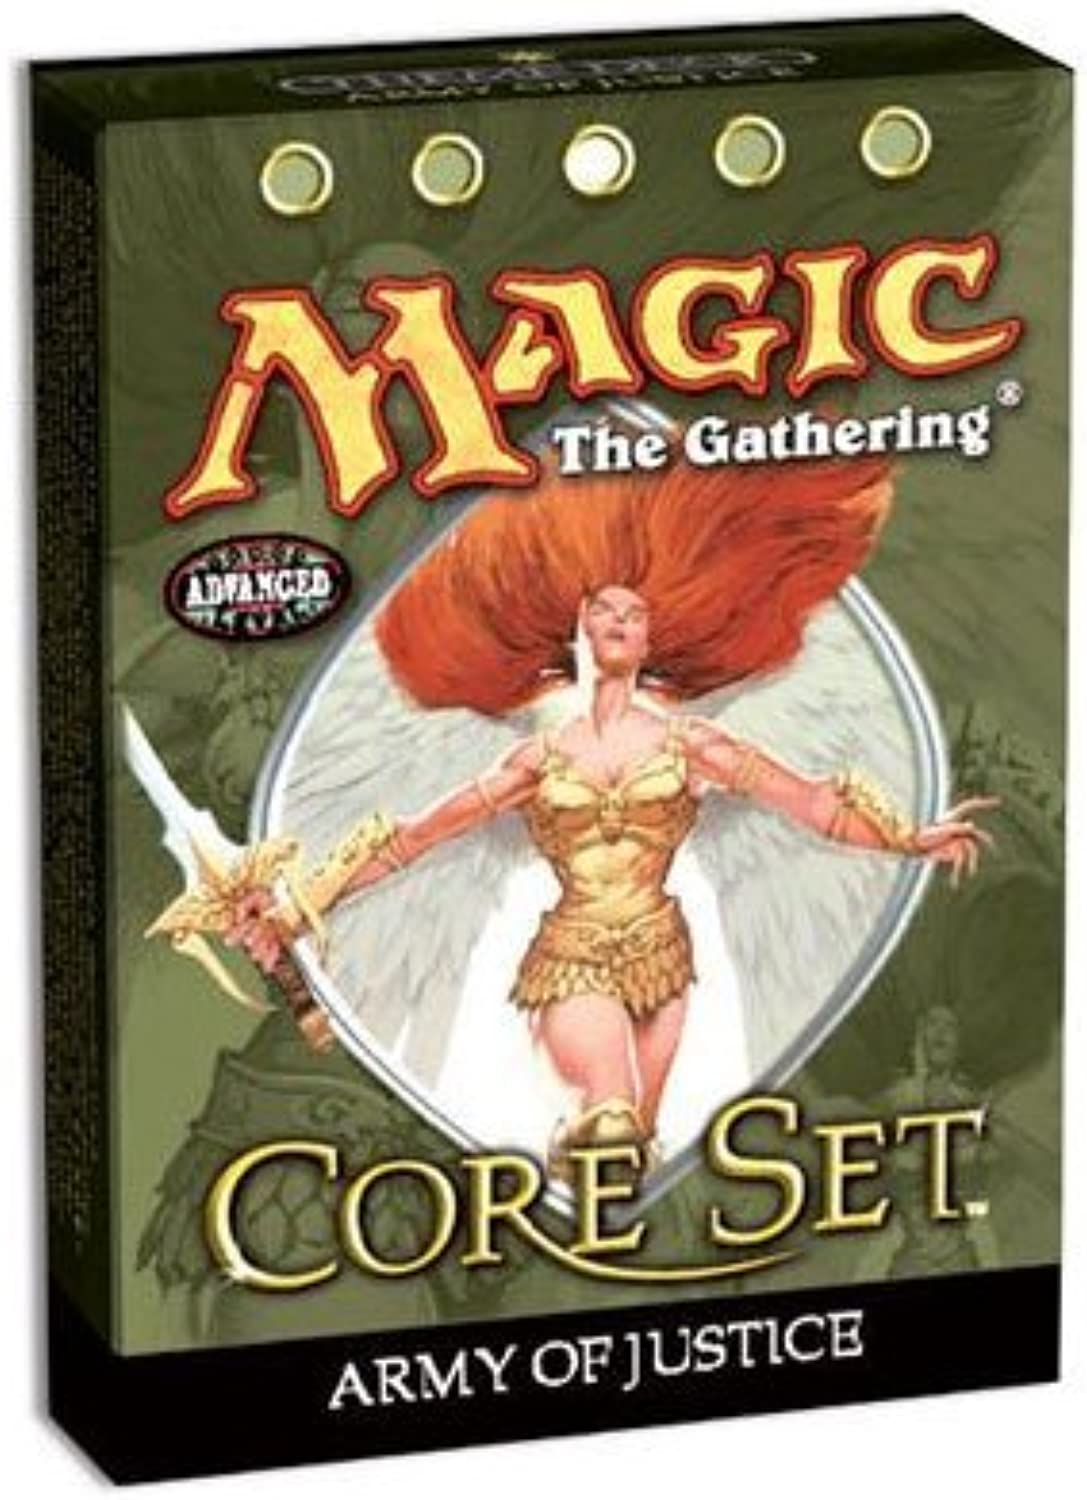 Magic the Gathering MTG 9th Edition Core Set Army of Justice Theme Deck